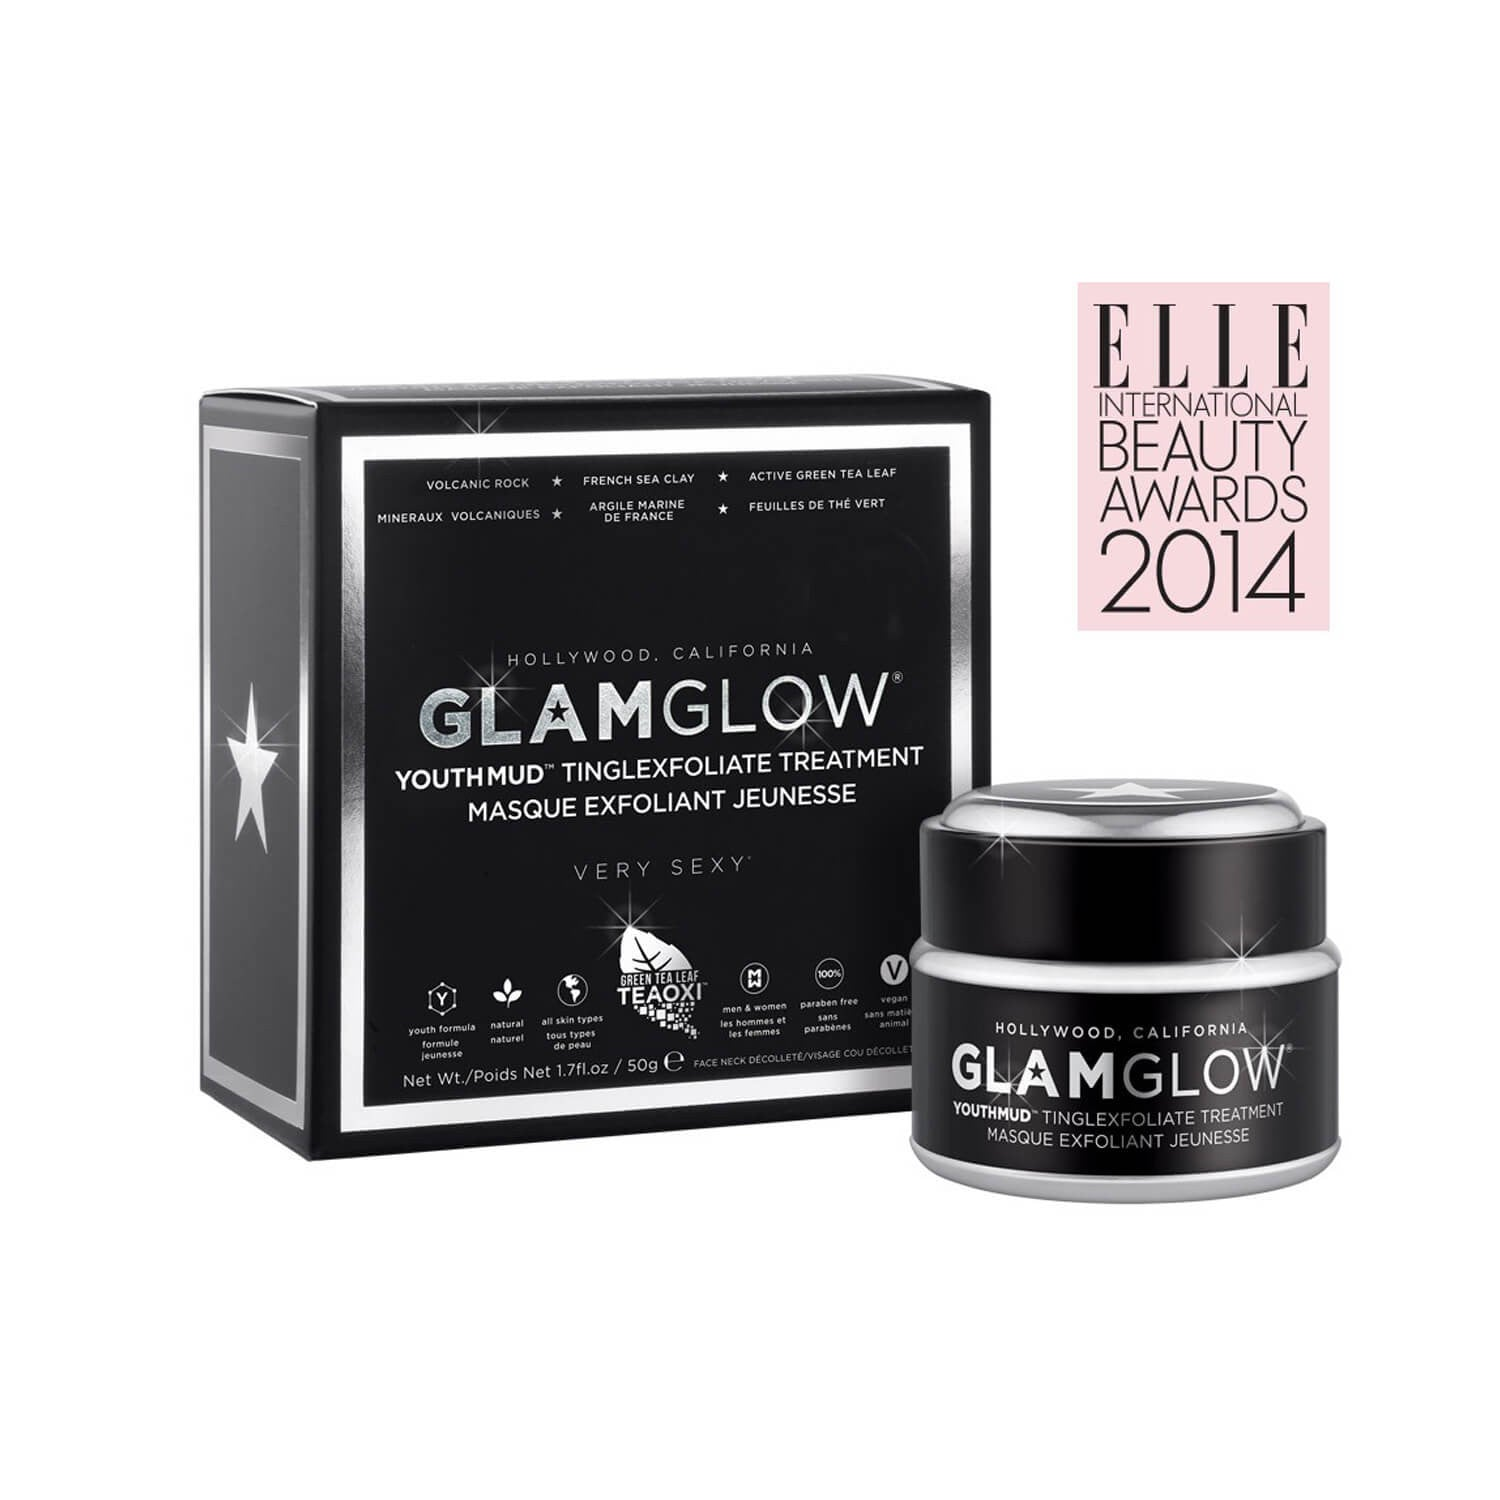 GLAMGLOW YOUTHMUD TINGLEXFOLIATE TREATMENT BOX